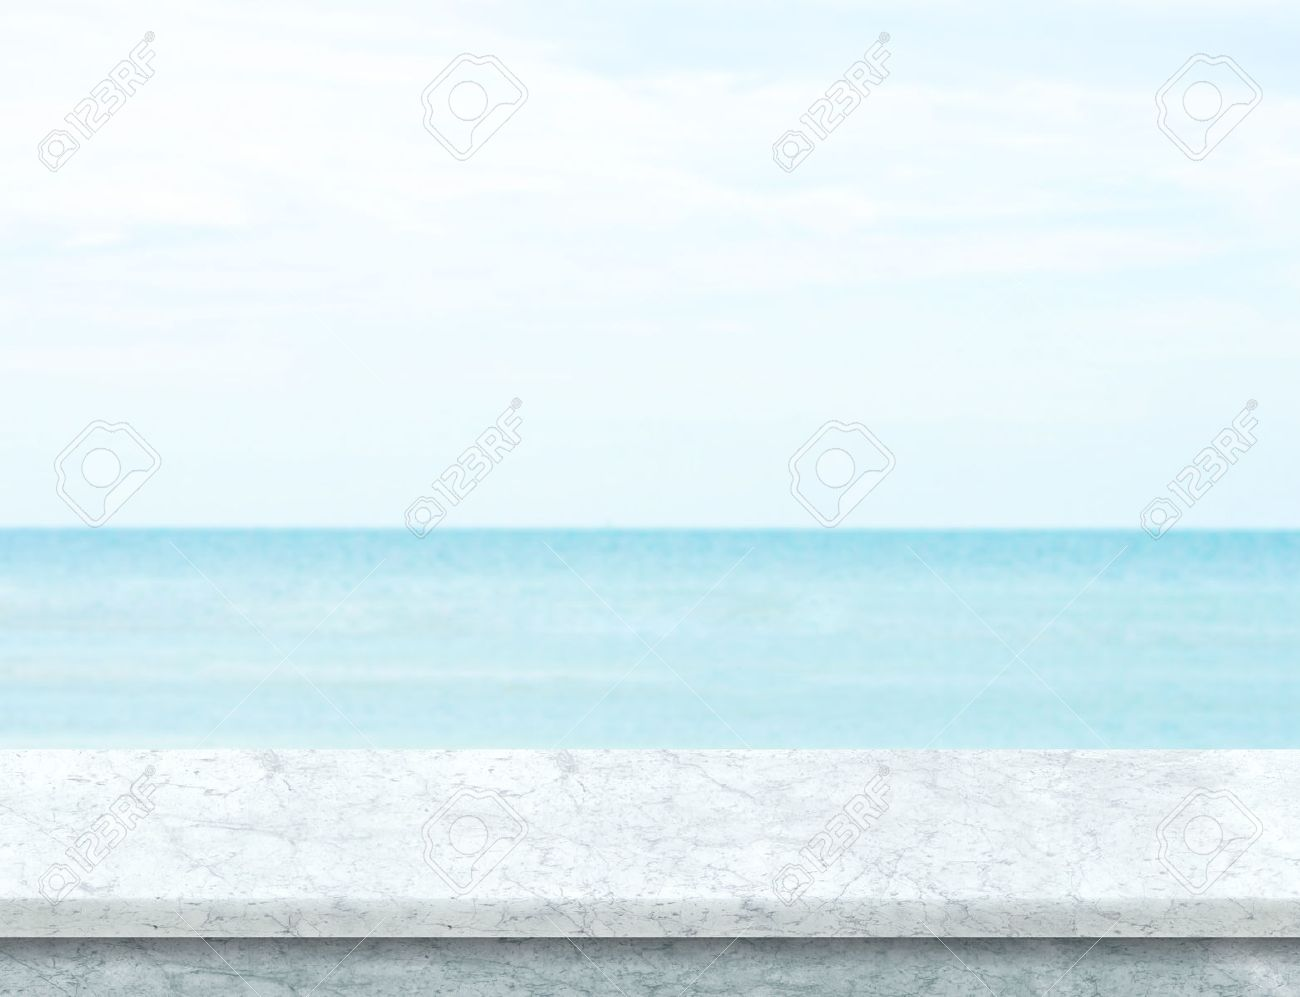 white marble table top. white marble table top with blurred sea and blue sky at background, mock up template t